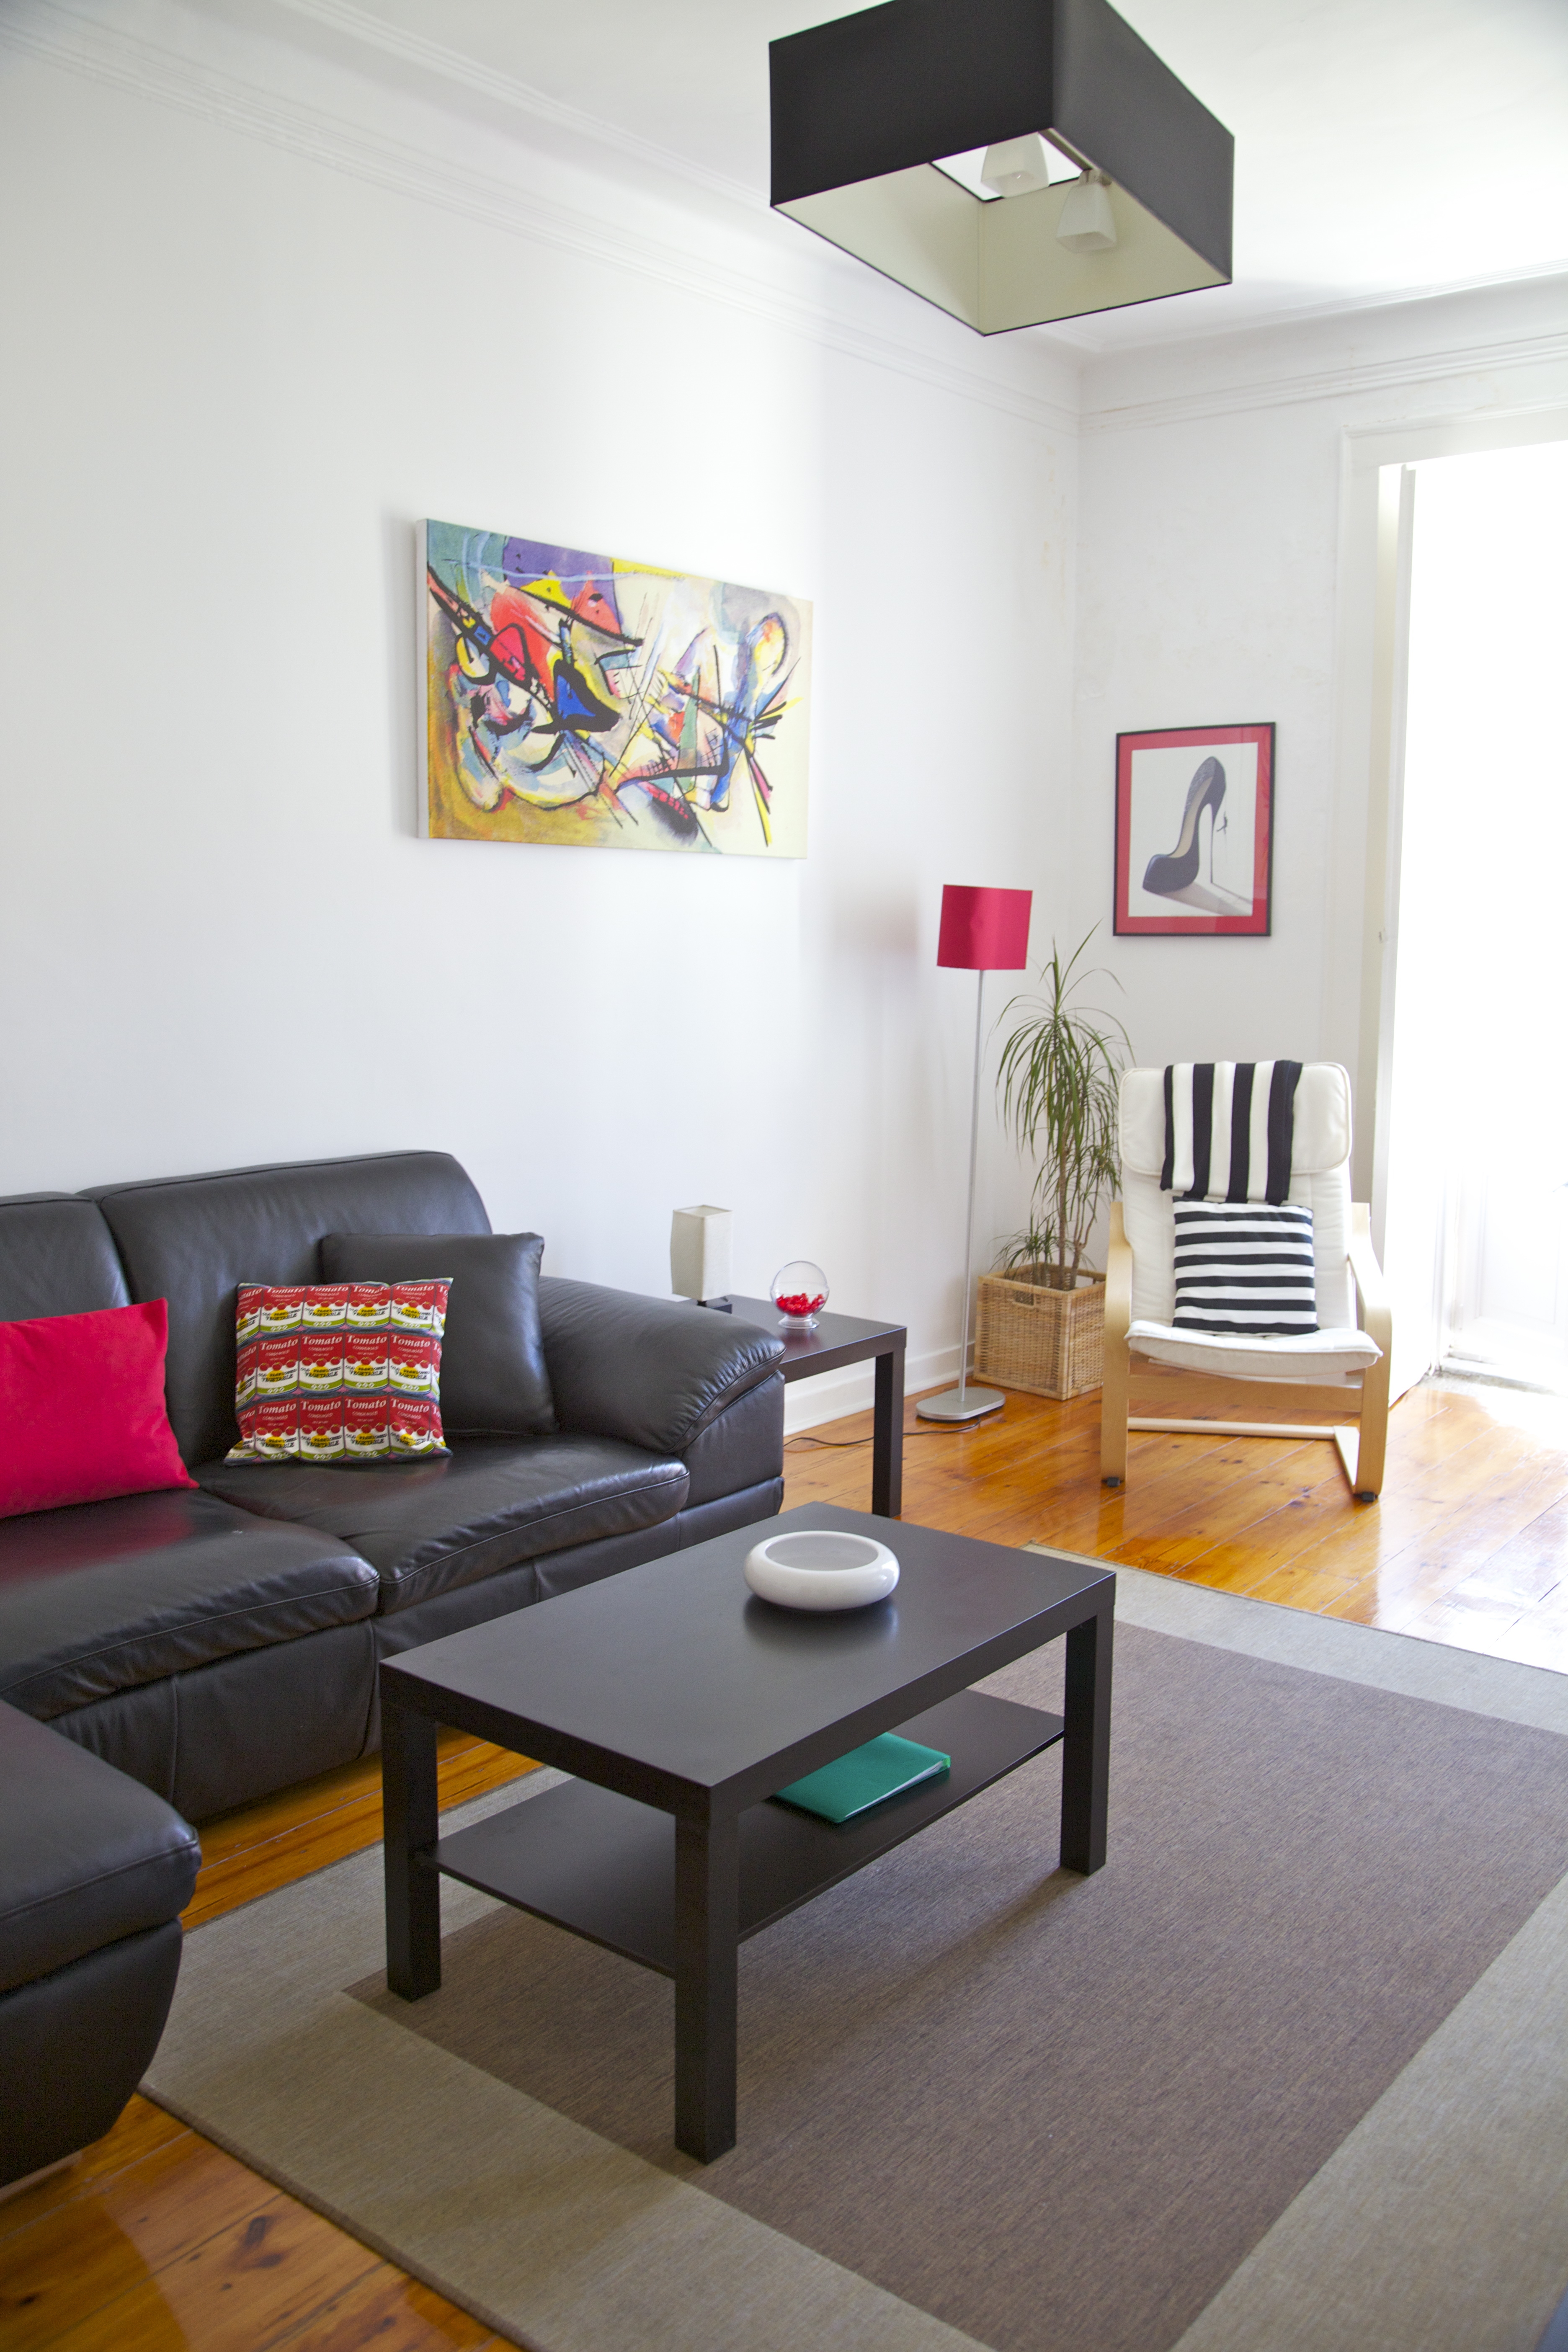 Airbnb: Is it worth the hype? - Suitcases and Sandcastles